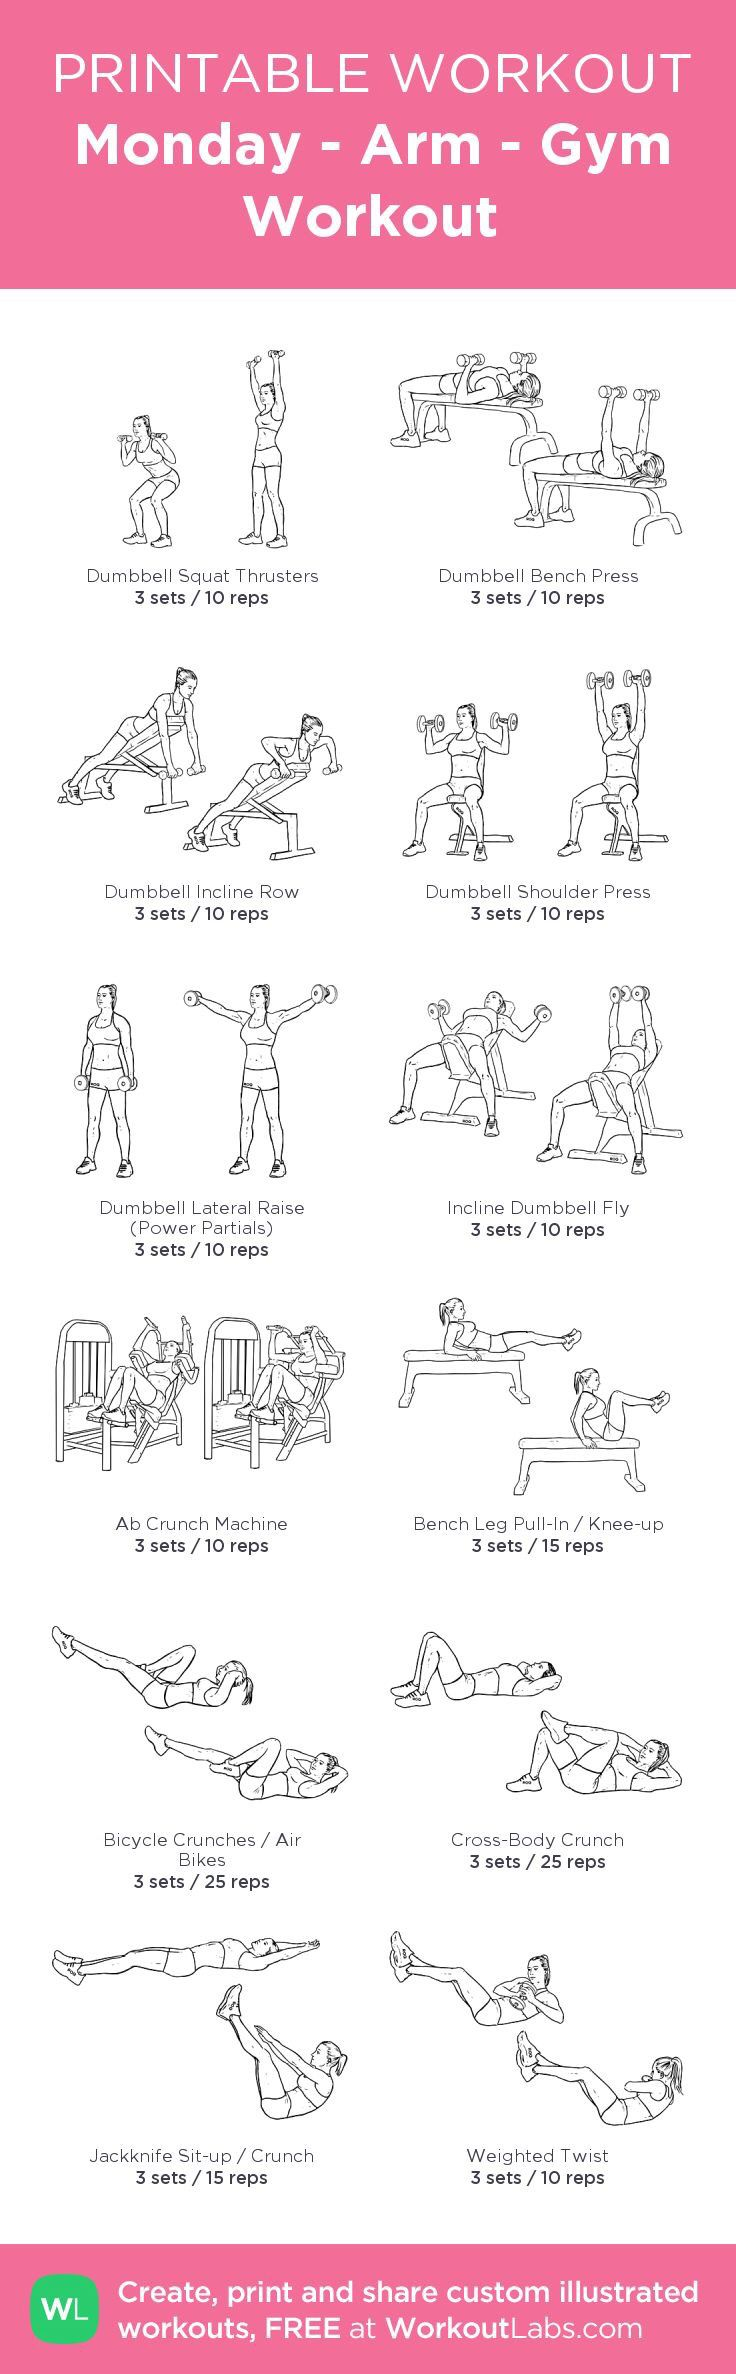 1000+ ideas about Gym Programs on Pinterest | Pilates ...